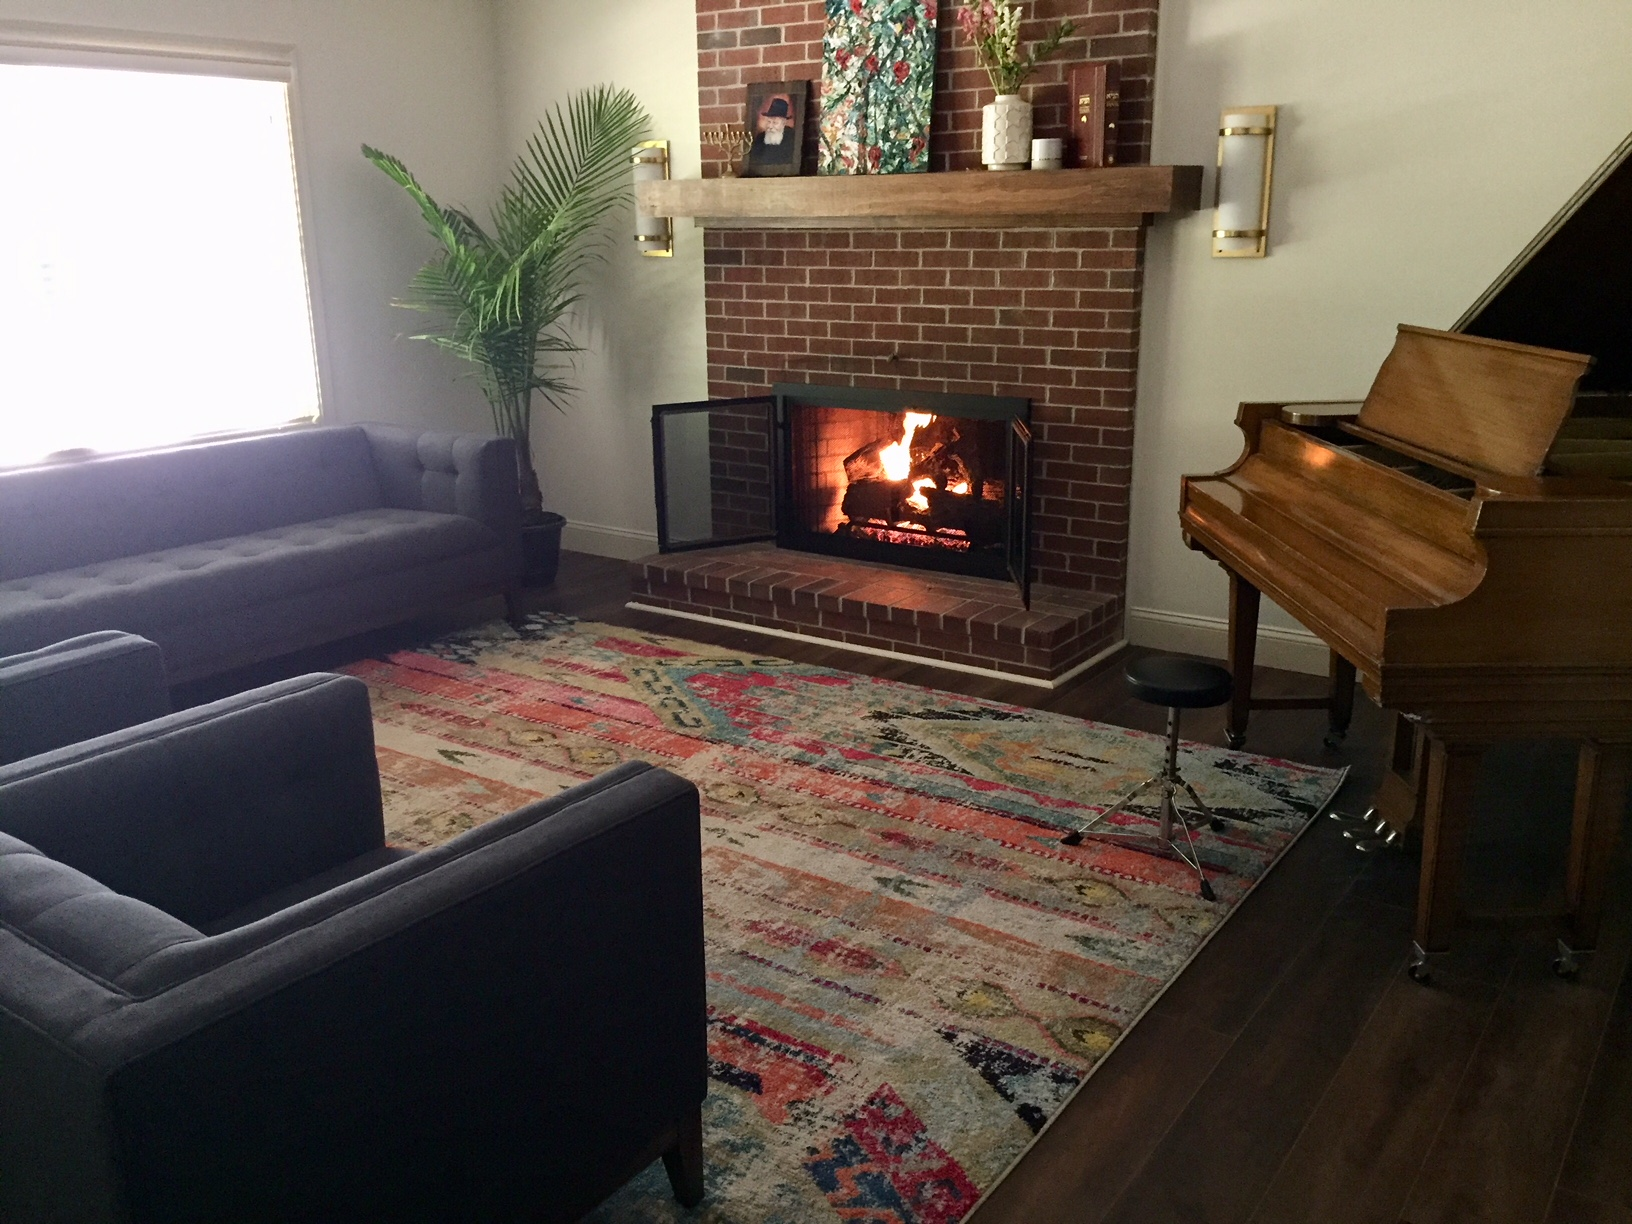 A welcoming fireplace greets visitors at CHabad of New Hampshire's Center for Jewish Life